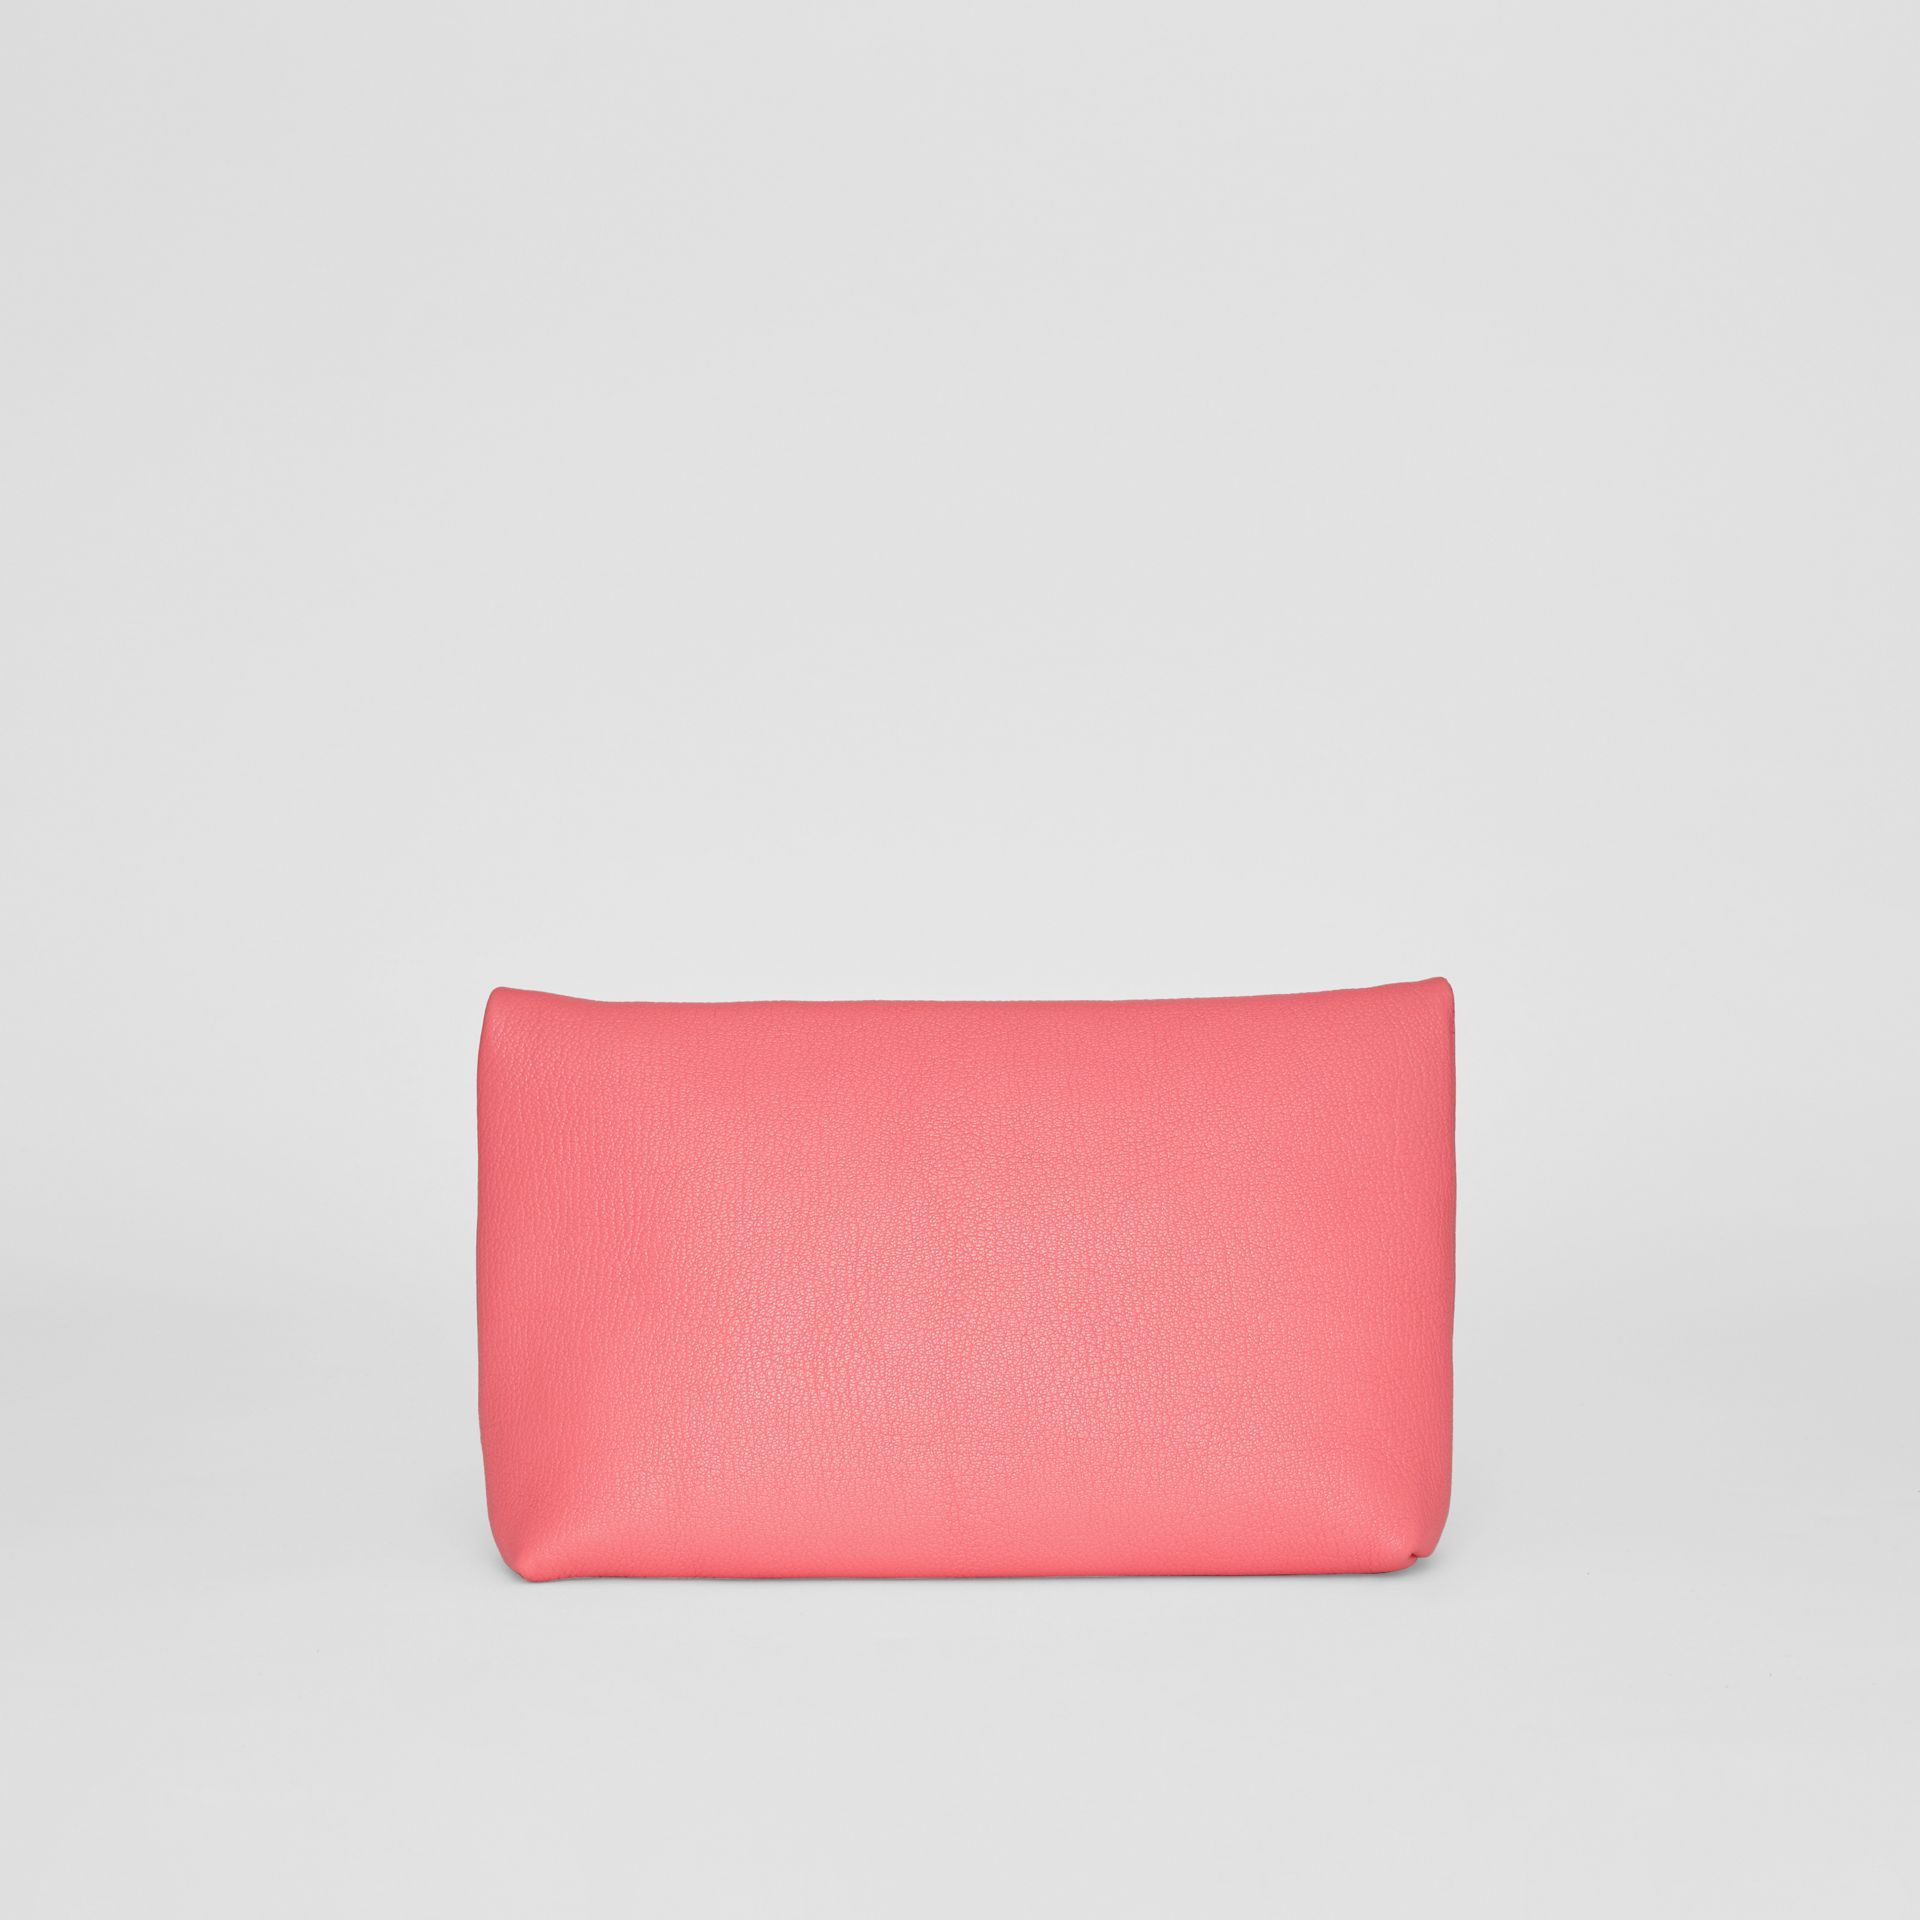 The Medium Pin Clutch in Leather in Bright Coral Pink - Women | Burberry United States - gallery image 7